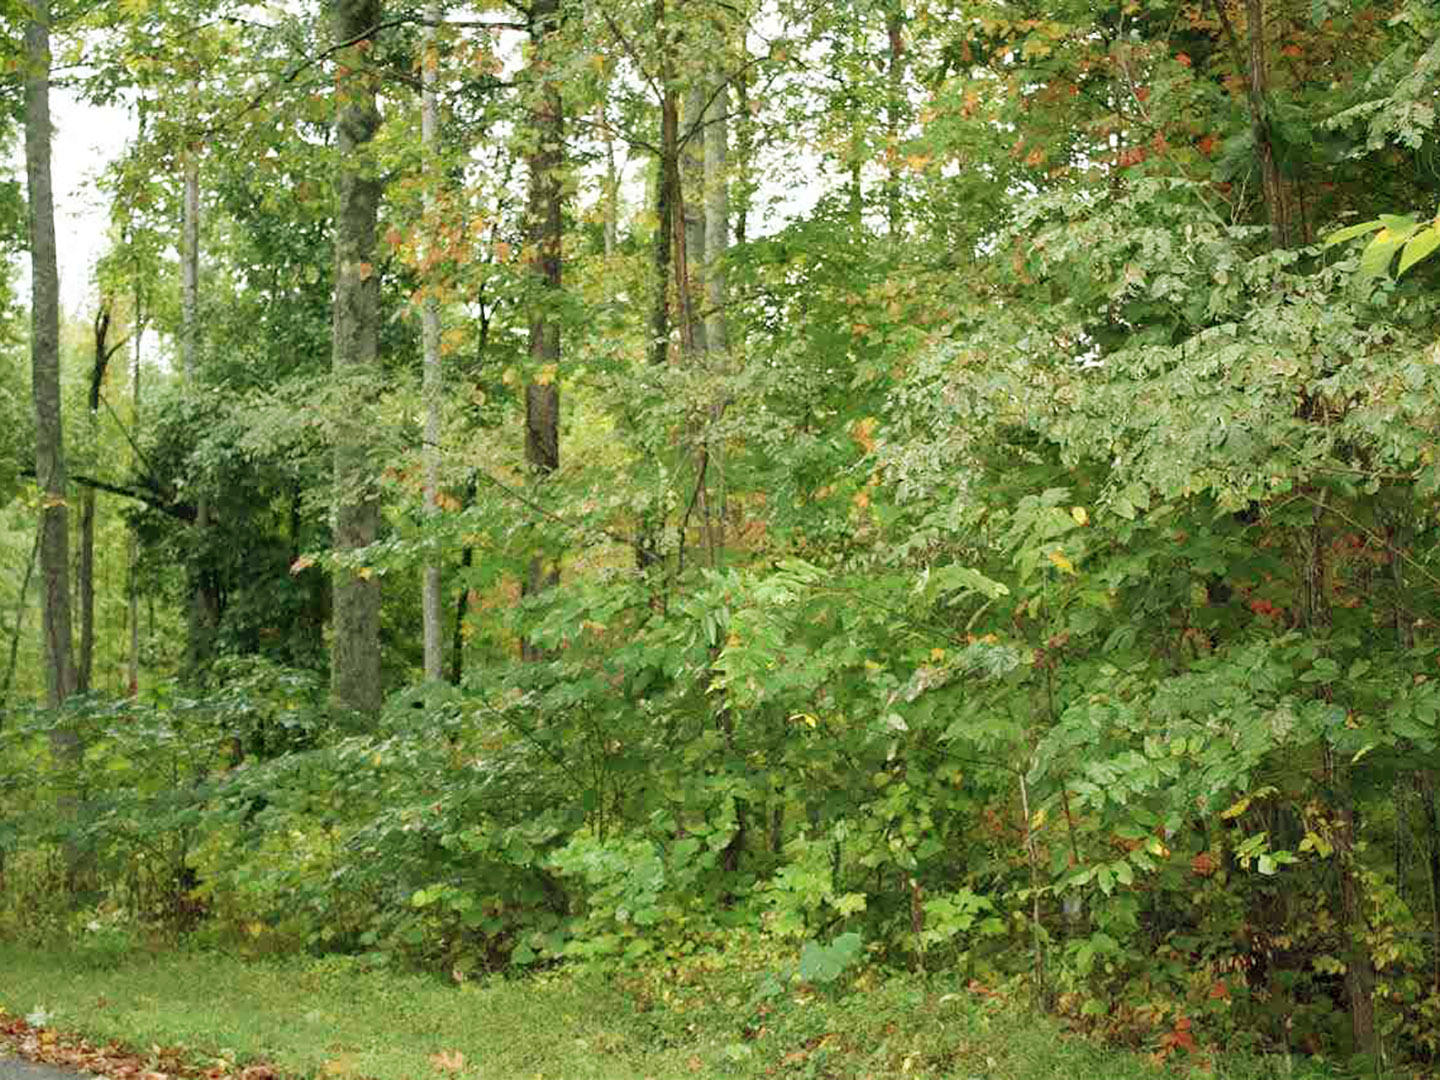 Collier, Dandridge, Tennessee, United States 37725, ,Lots & Acreage,For Sale,Collier,1035852